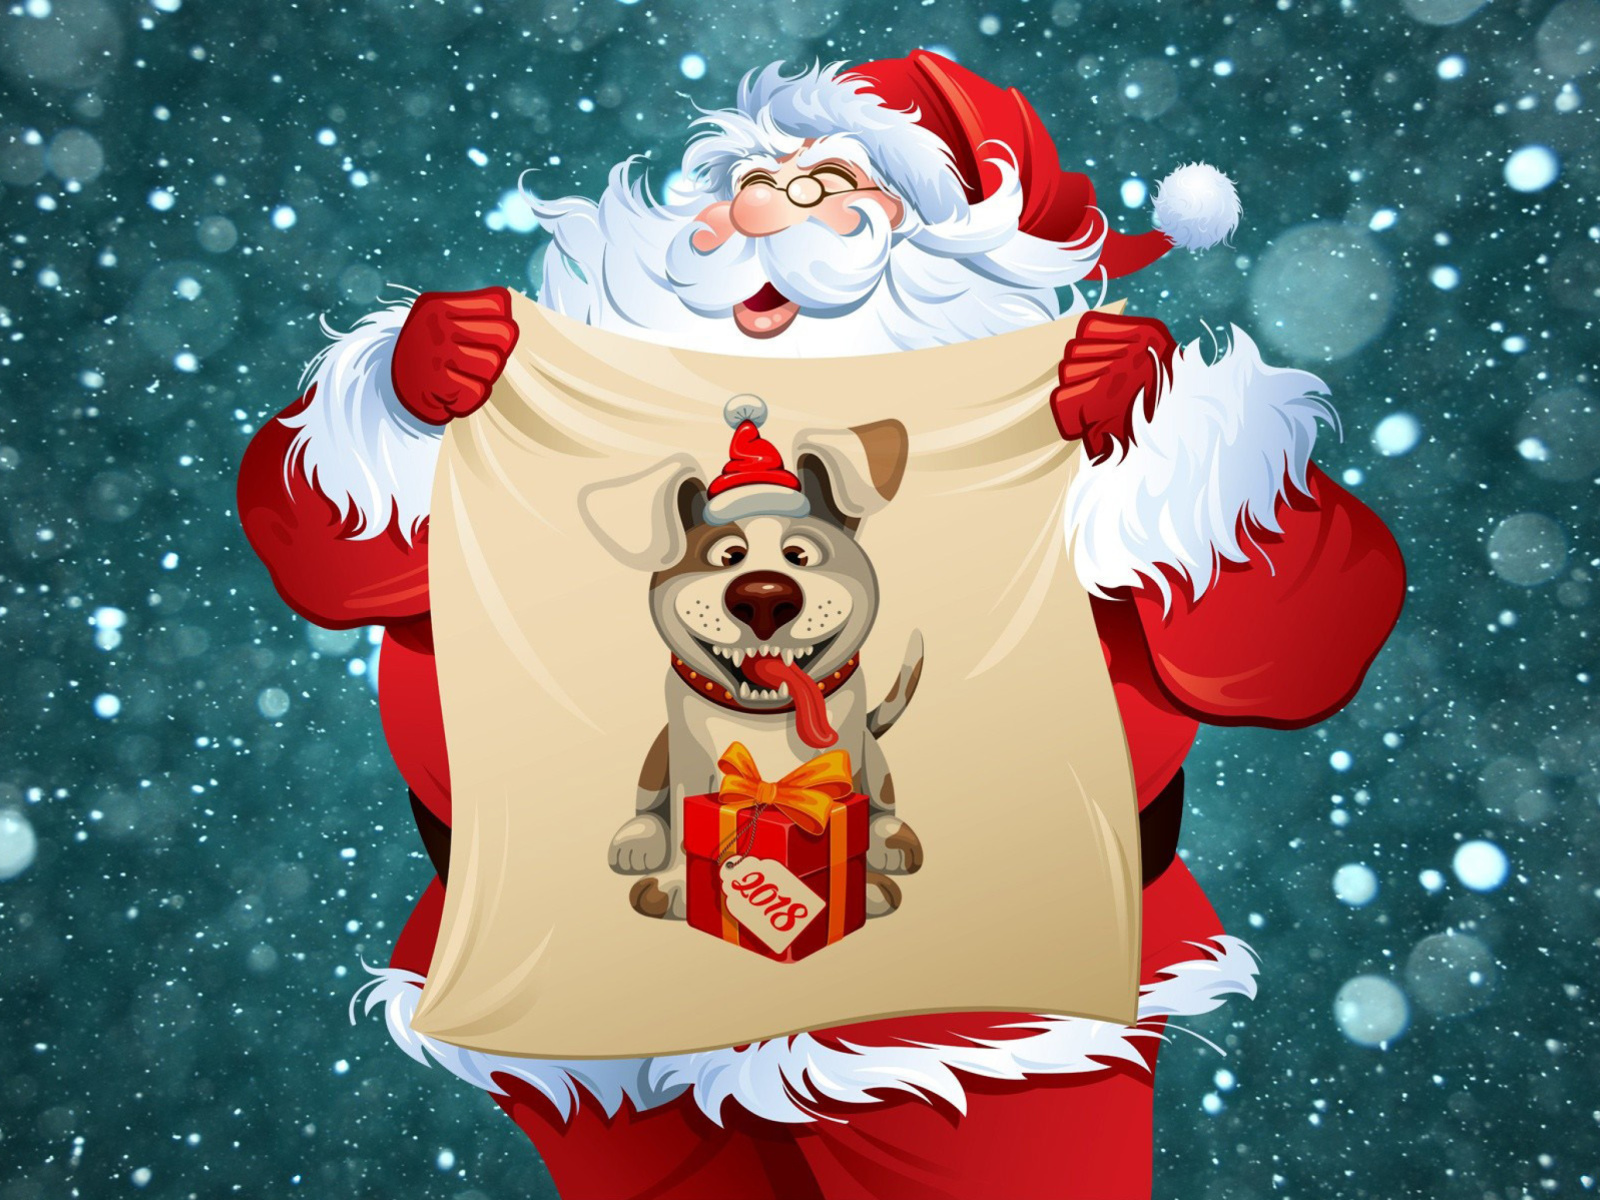 Happy New Year 2018 with Dog and Santa screenshot #1 1600x1200